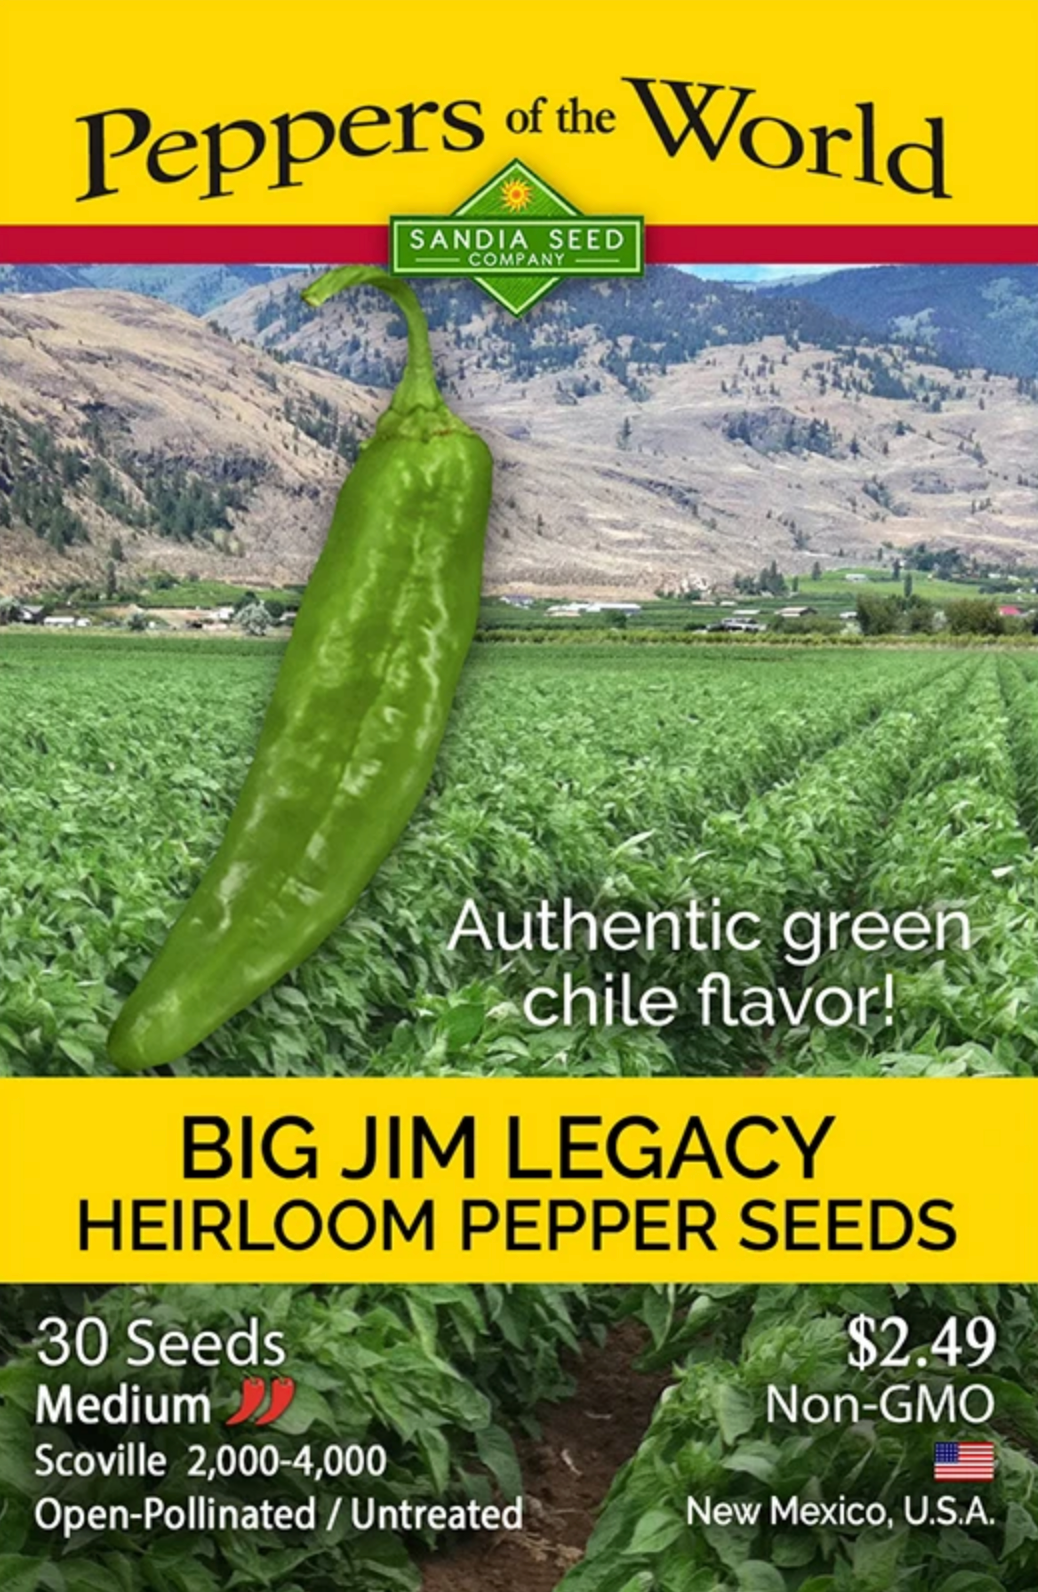 Green Chile: Big Jim Legacy Seeds from SandiaSeed.com